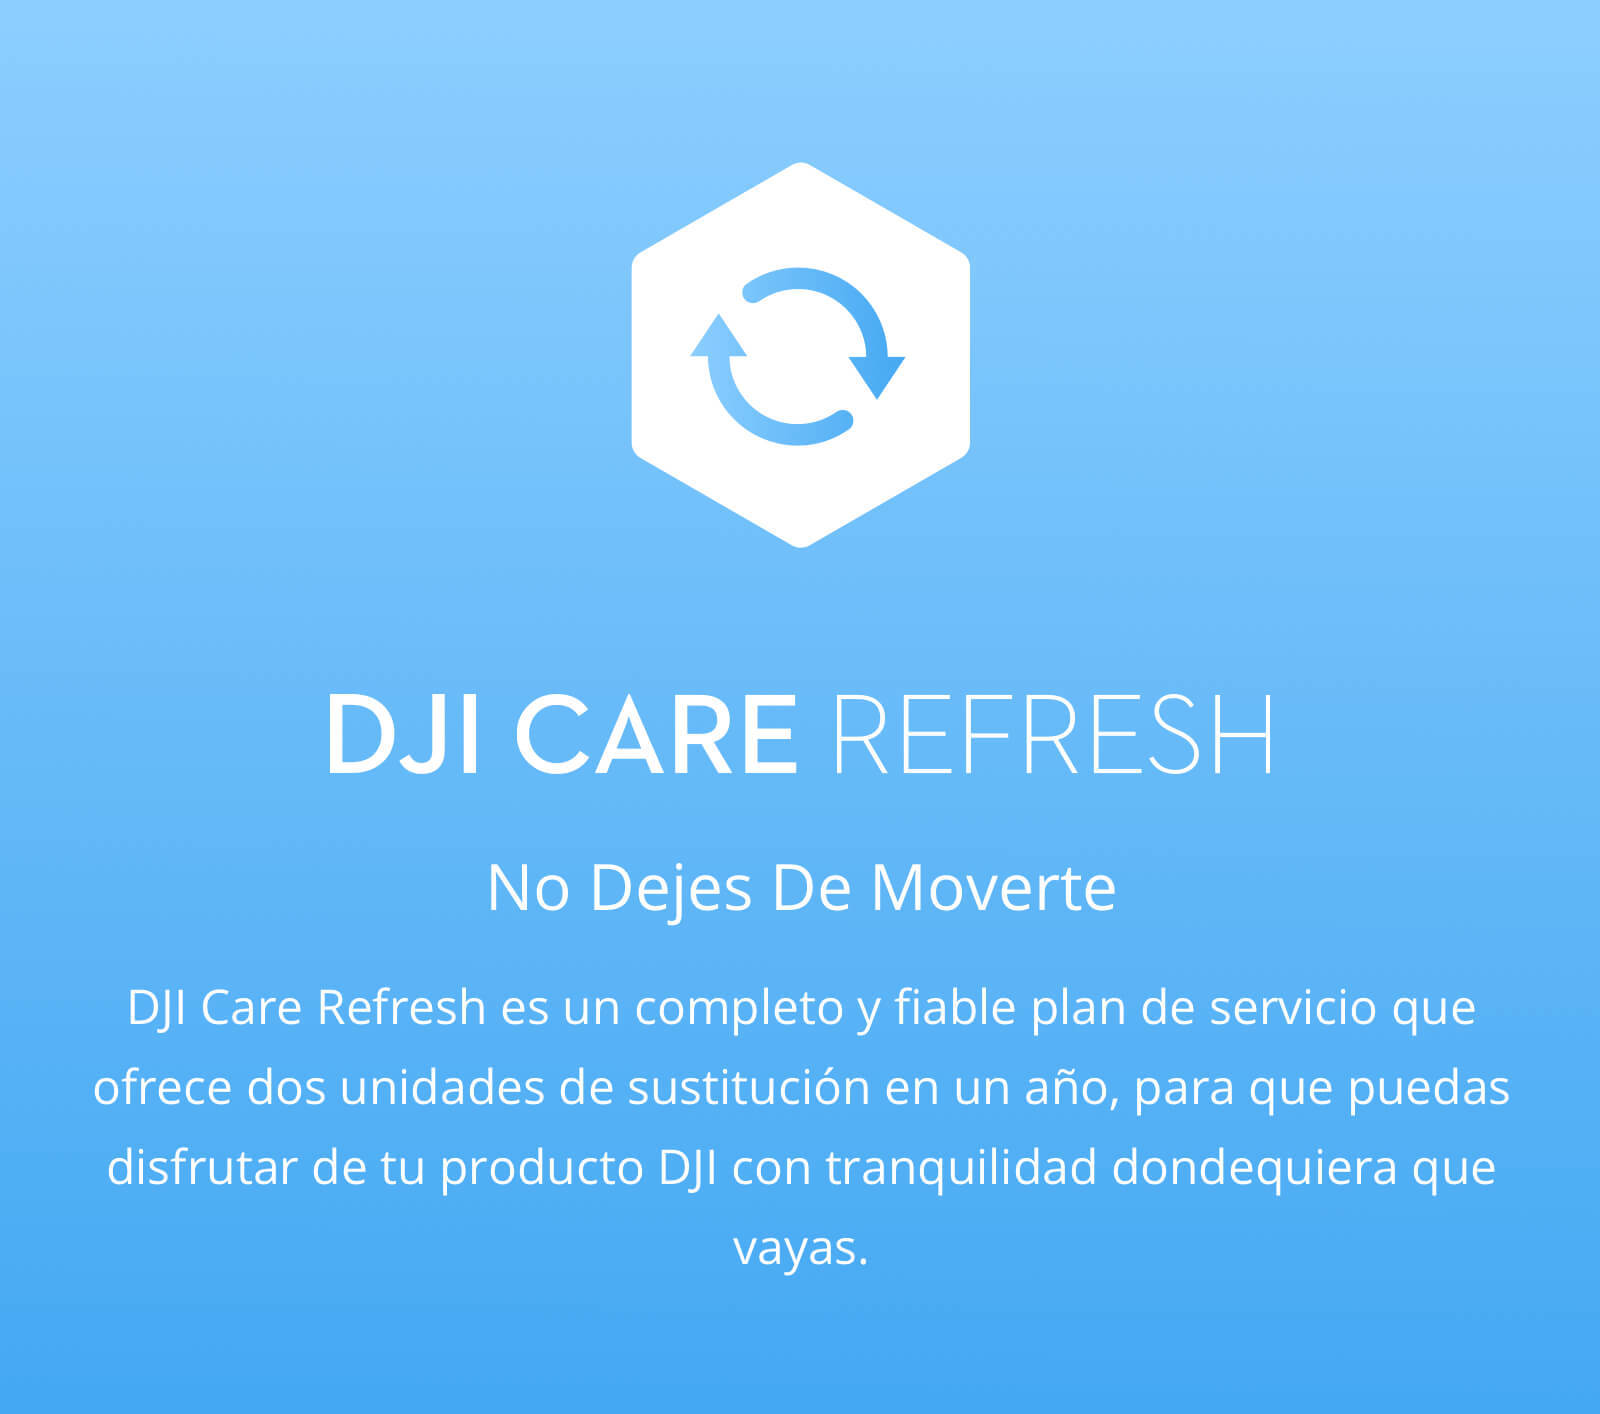 DJI_Care_Refresh_Osmo_Mobile_3_stockrc